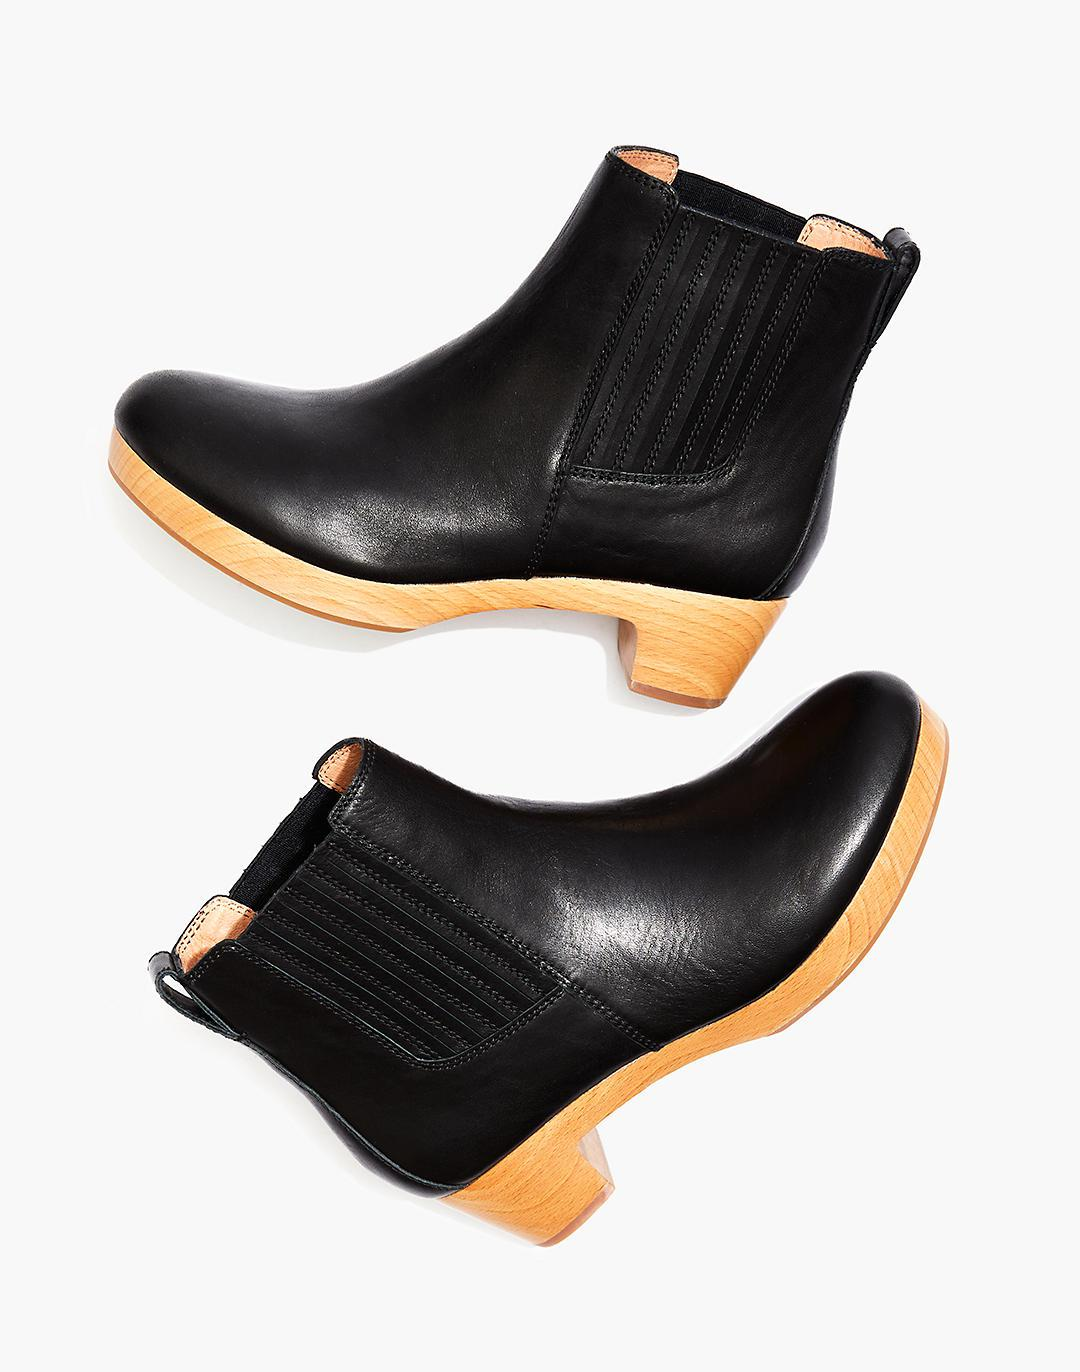 The Clog Boot in Leather